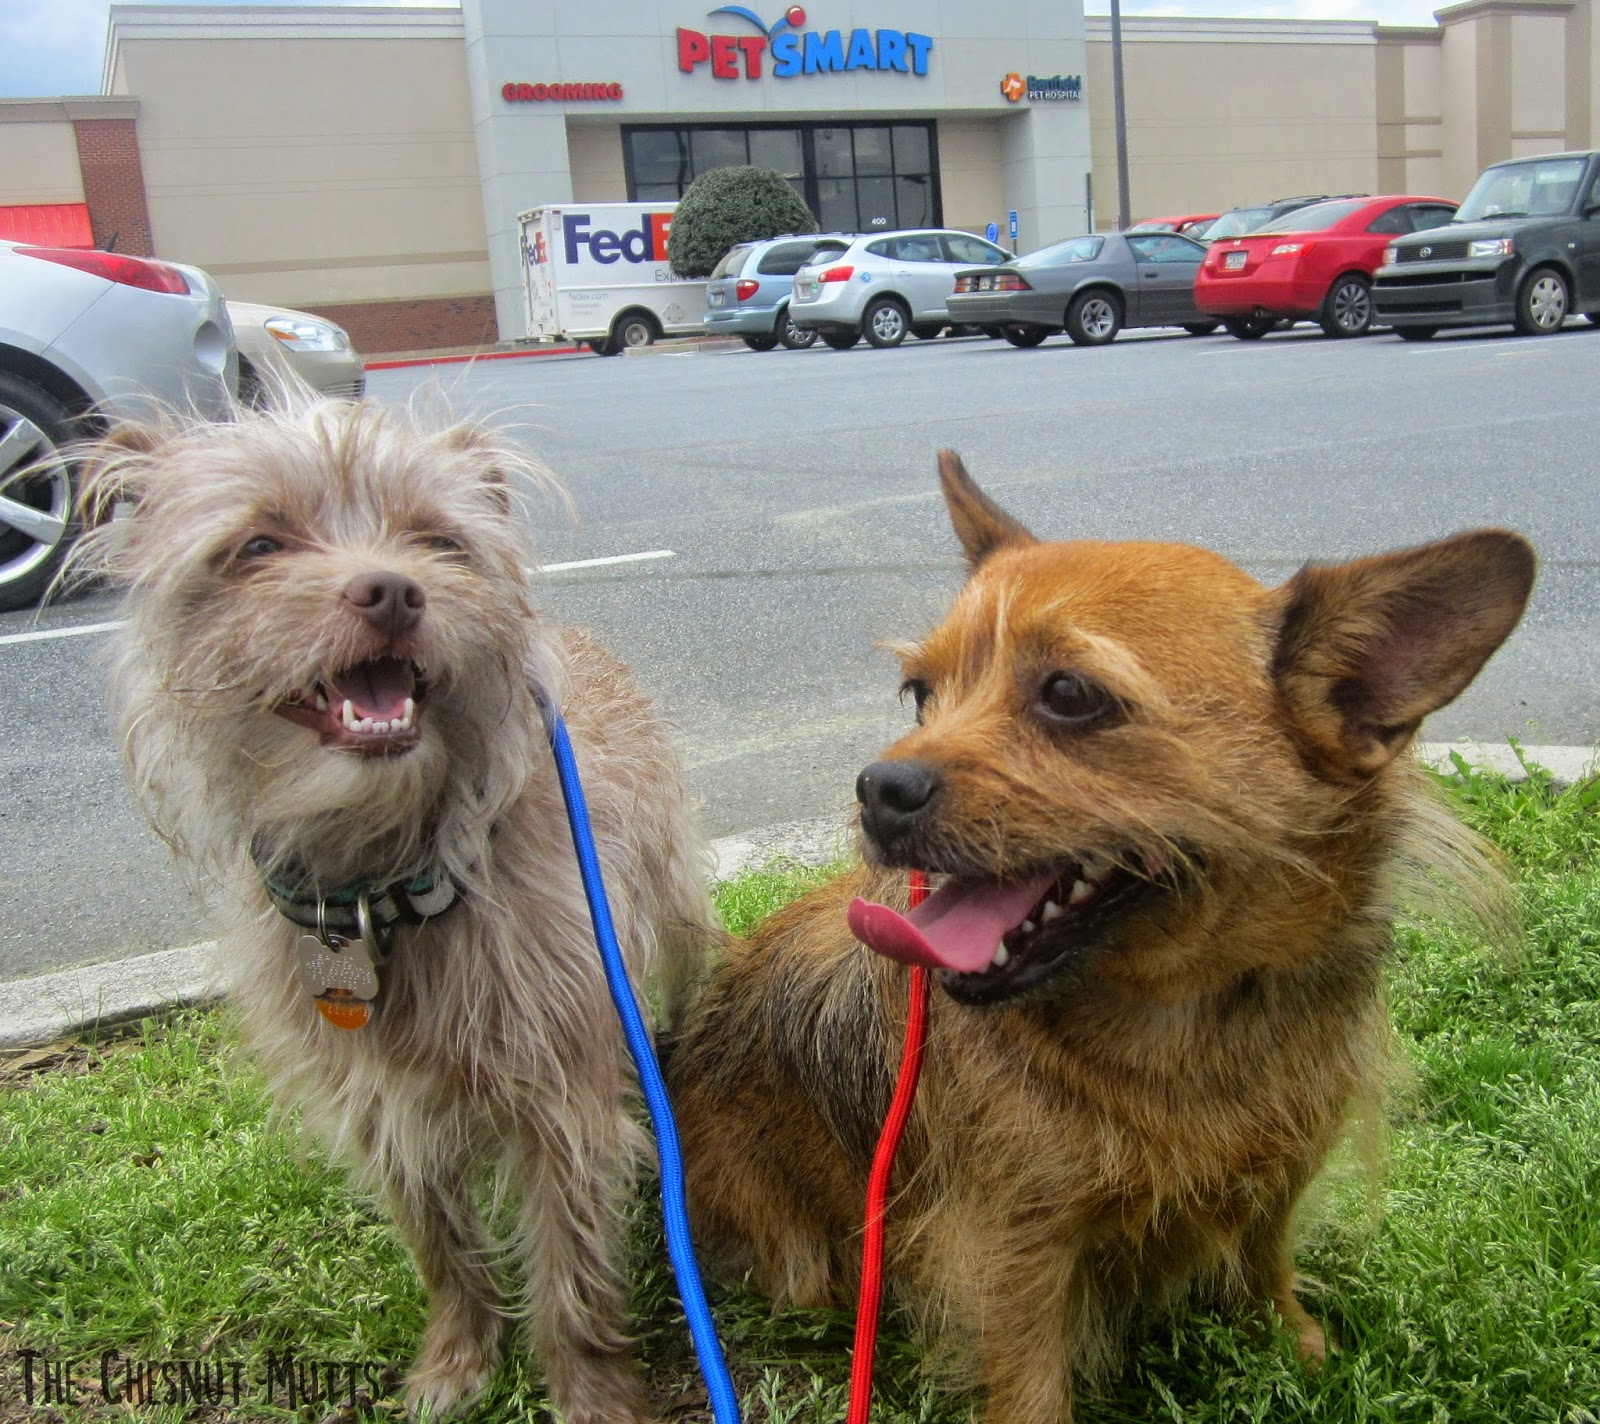 Bailey and Jada in front of Petsmart